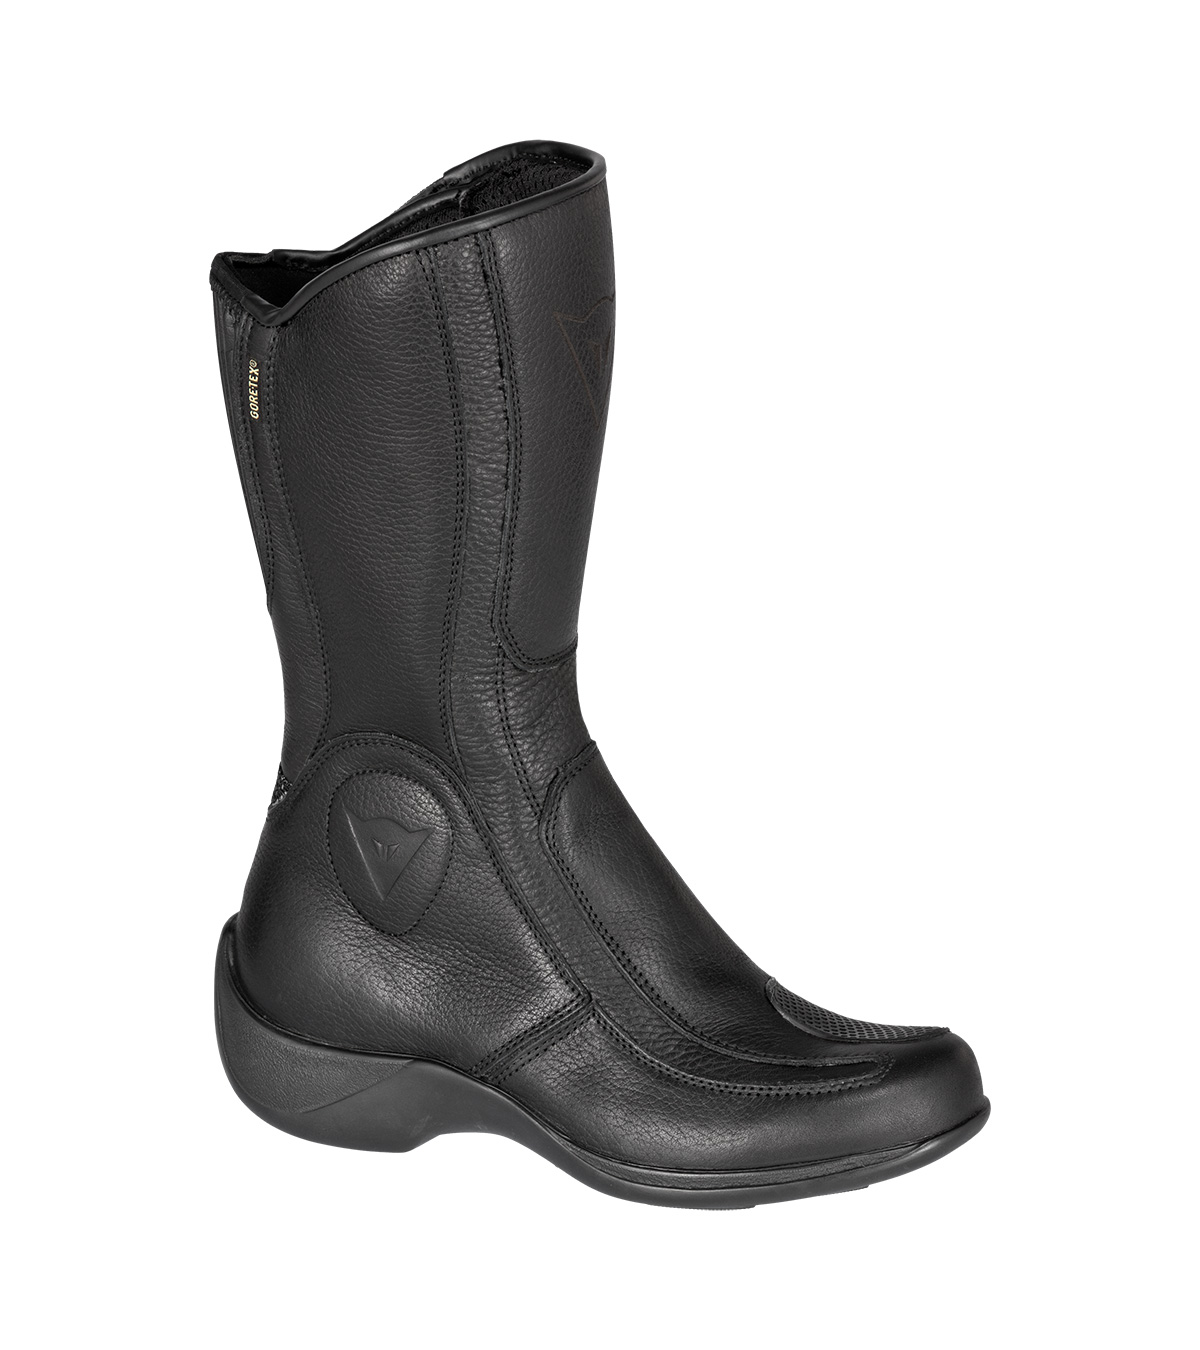 Waterproof Winter Boots Buyer S Guide